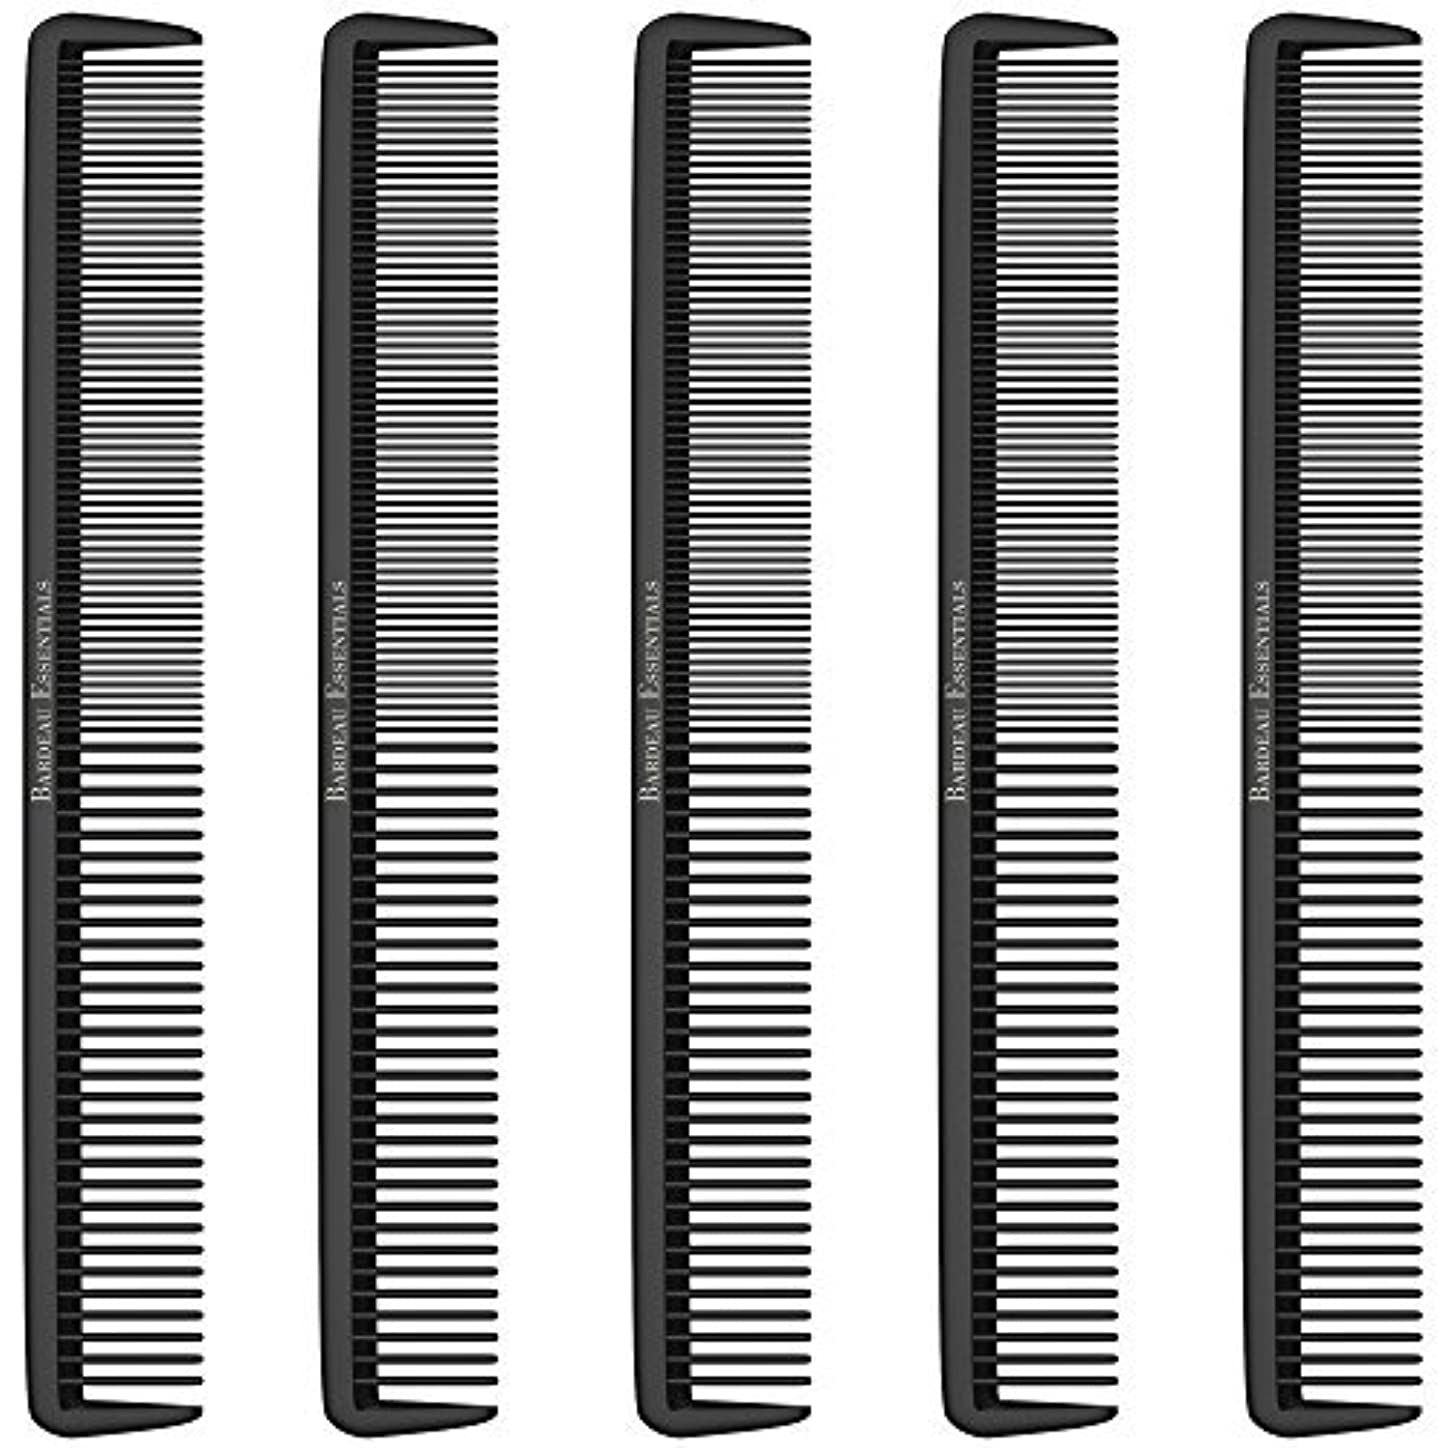 "たるみ地理ドライStyling Comb (5 Pack) - Professional 8.75"" Black Carbon Fiber Anti Static Chemical And Heat Resistant Hair Combs For All Hair Types For Men and Women - By Bardeau Essentials [並行輸入品]"